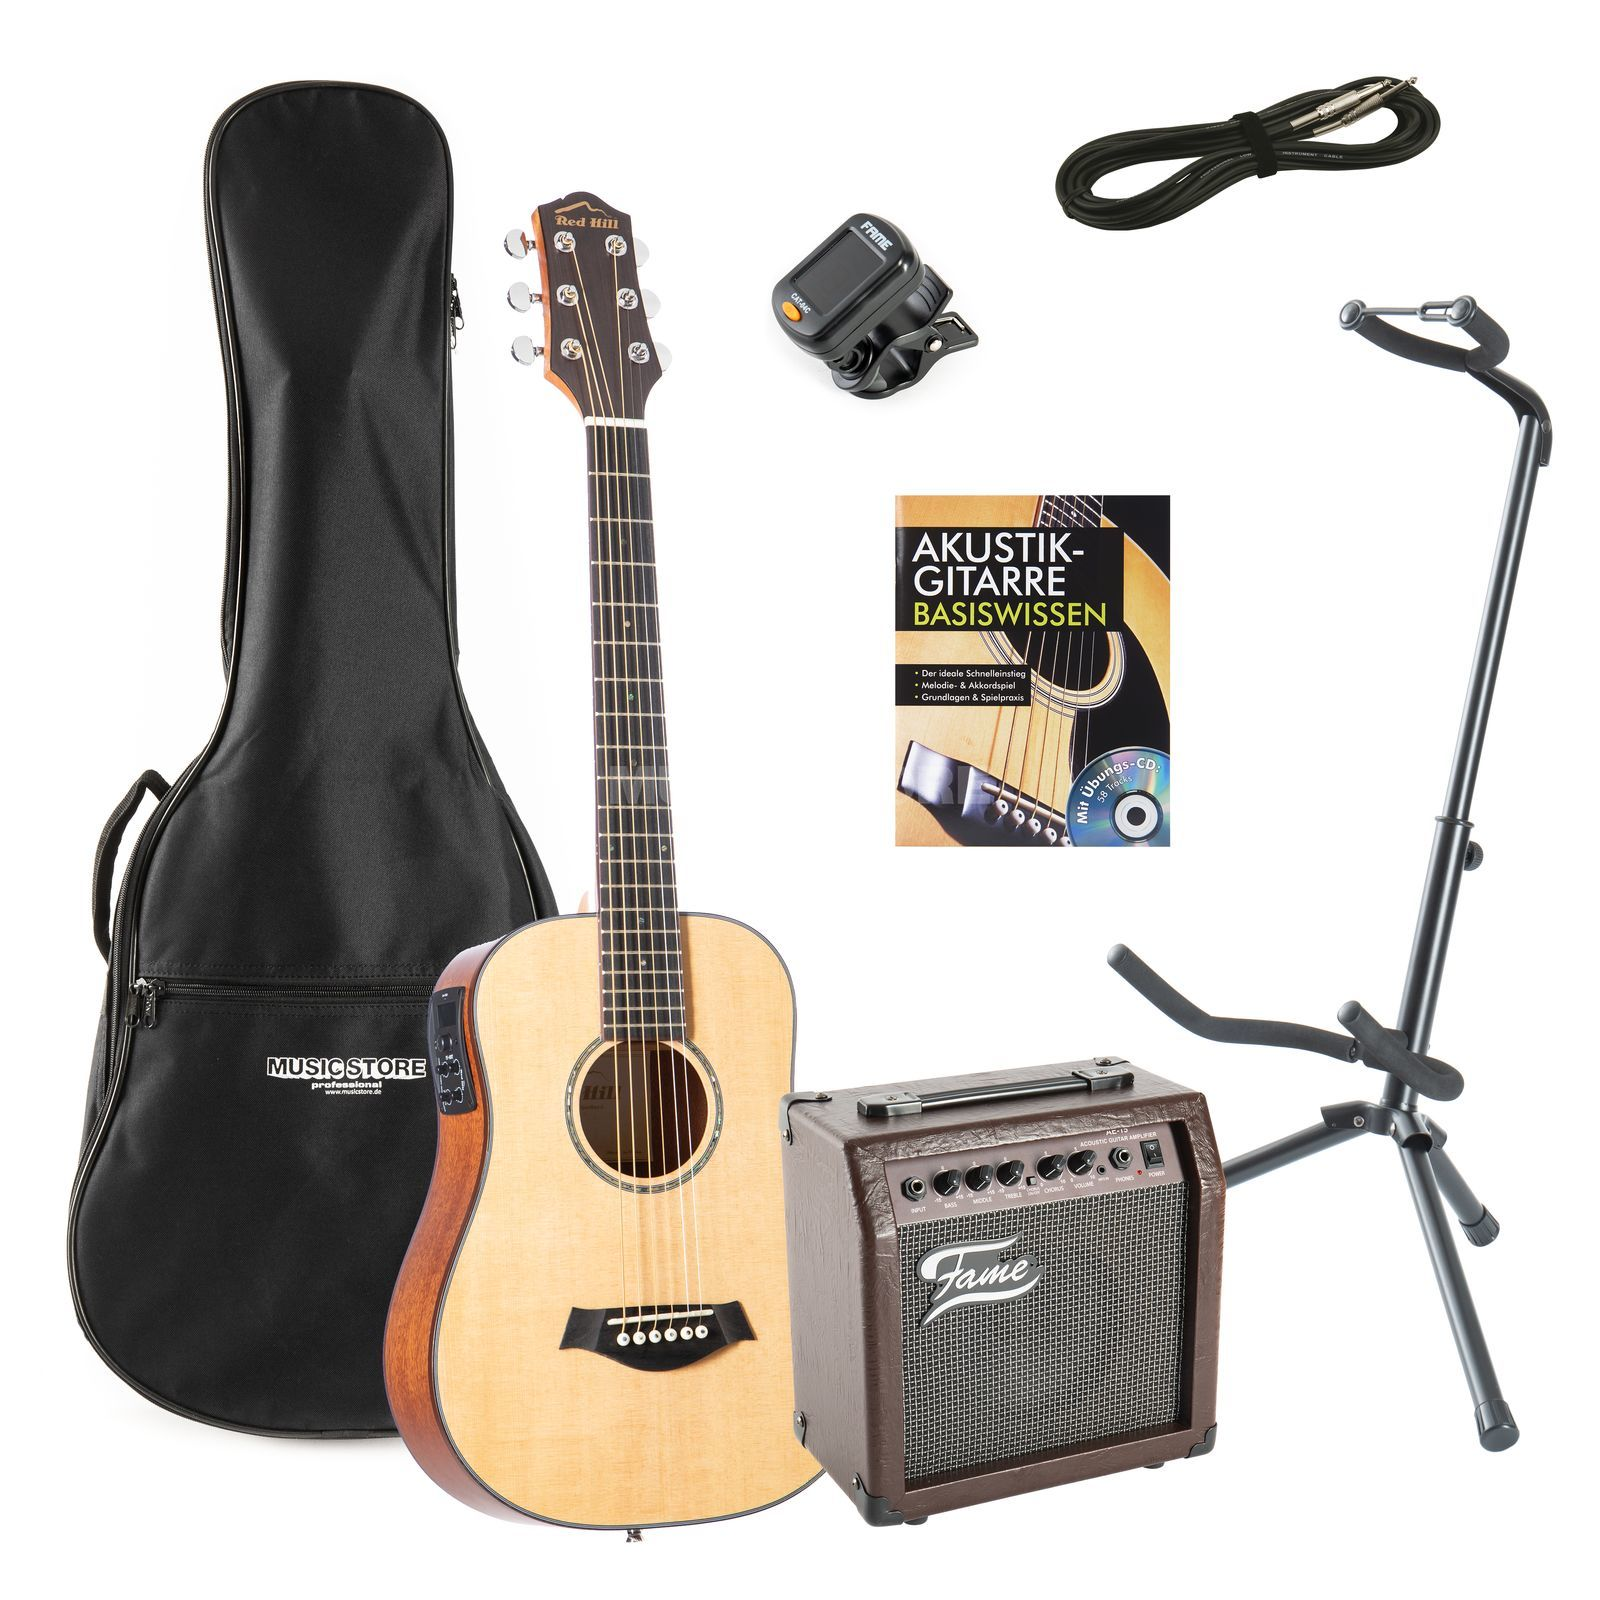 SET Fender ESC 105 incl. Bag + Tuner + Book + Stand Produktbild